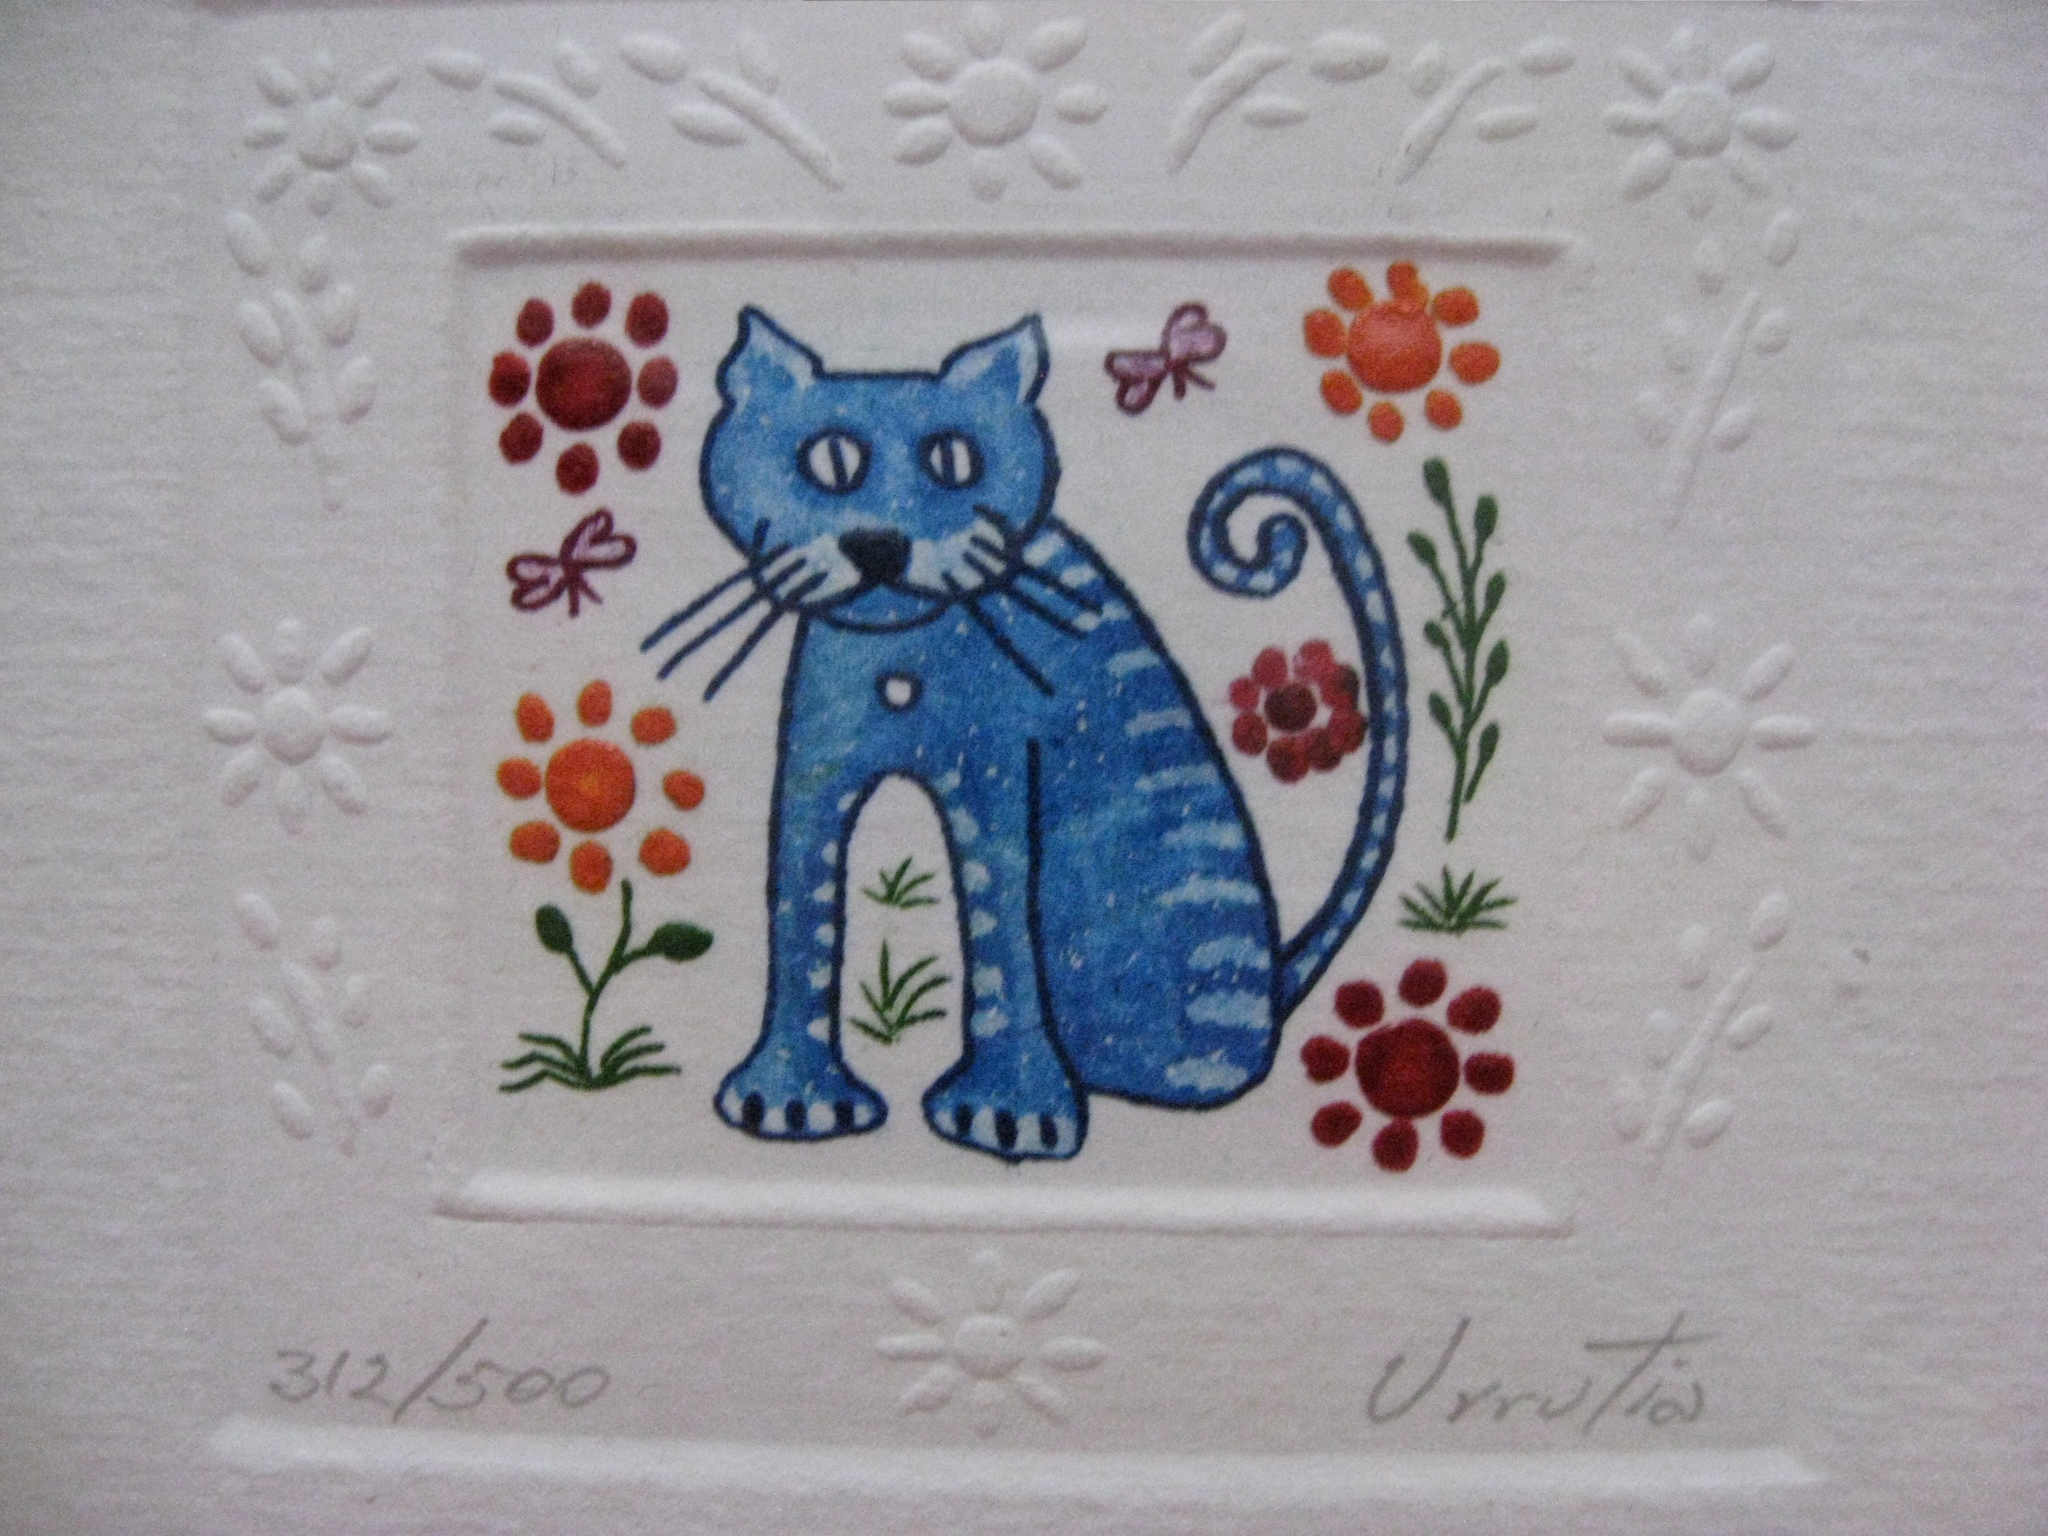 Tiny embossed and hand-painted prints from Mexico